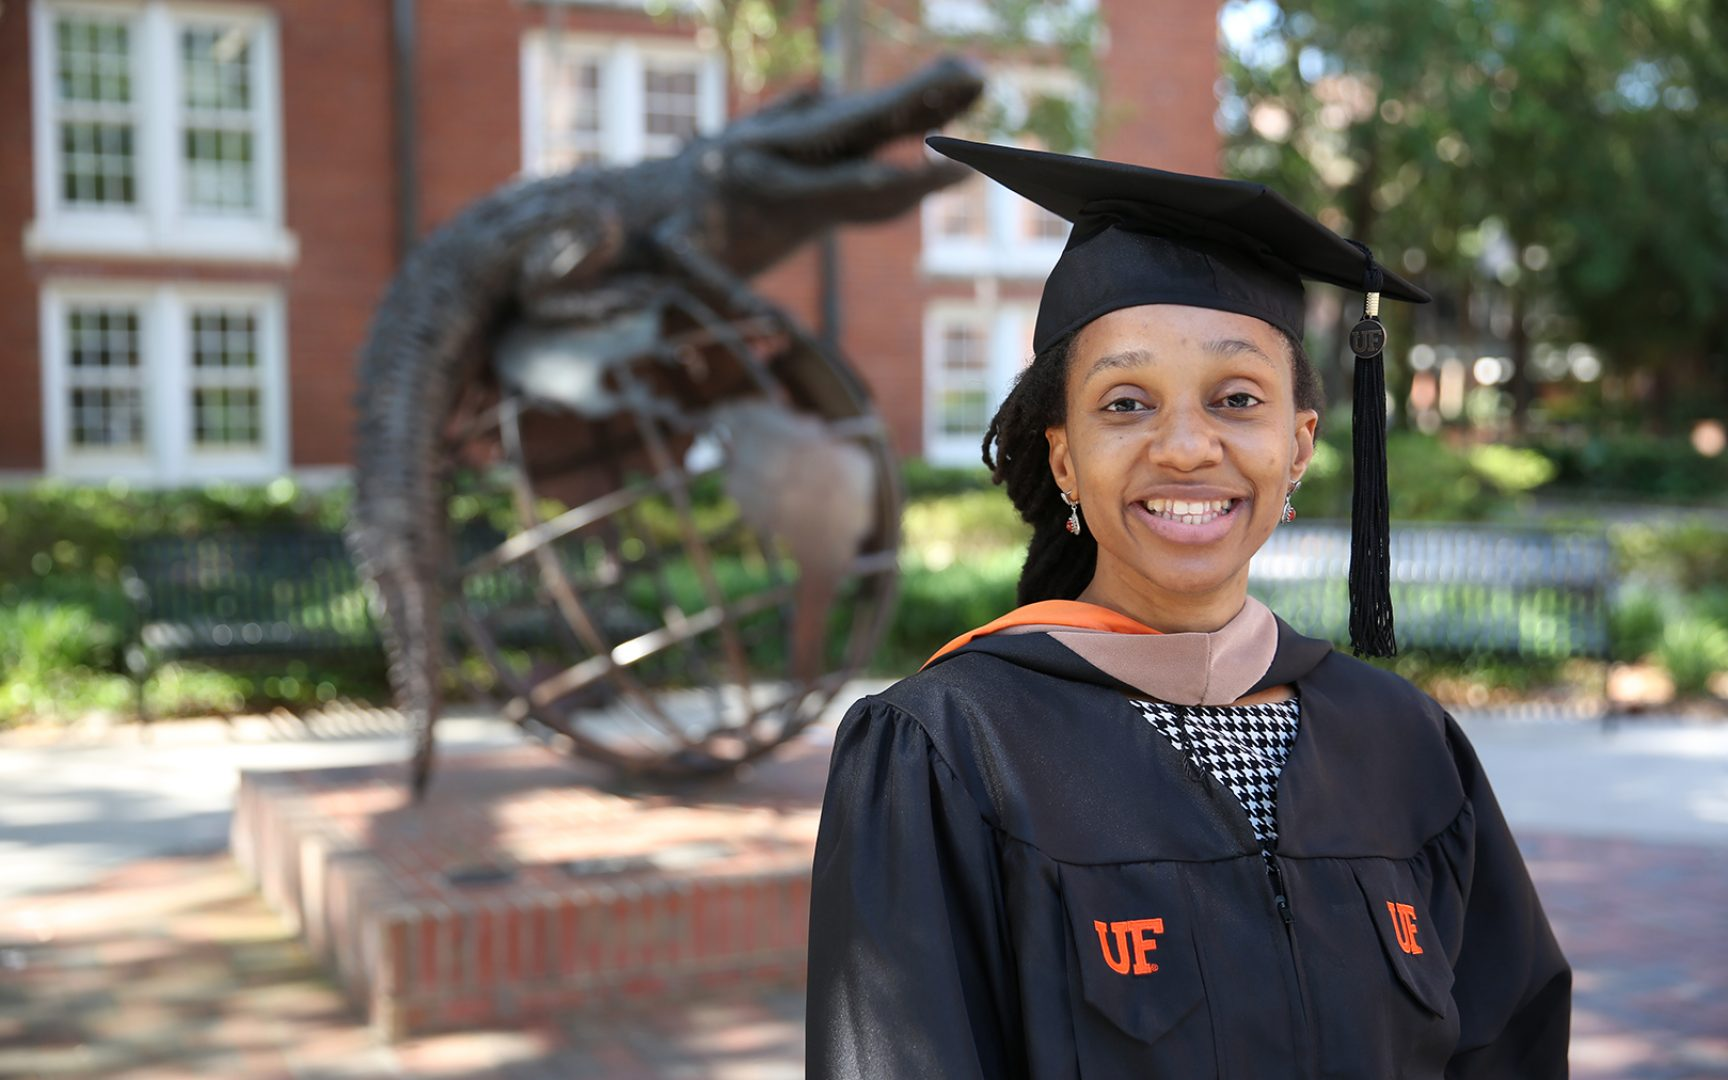 Erika Nang Sobze poses for a photo in her graduation cap and gown in front of the Gator Ubiquity Statue.